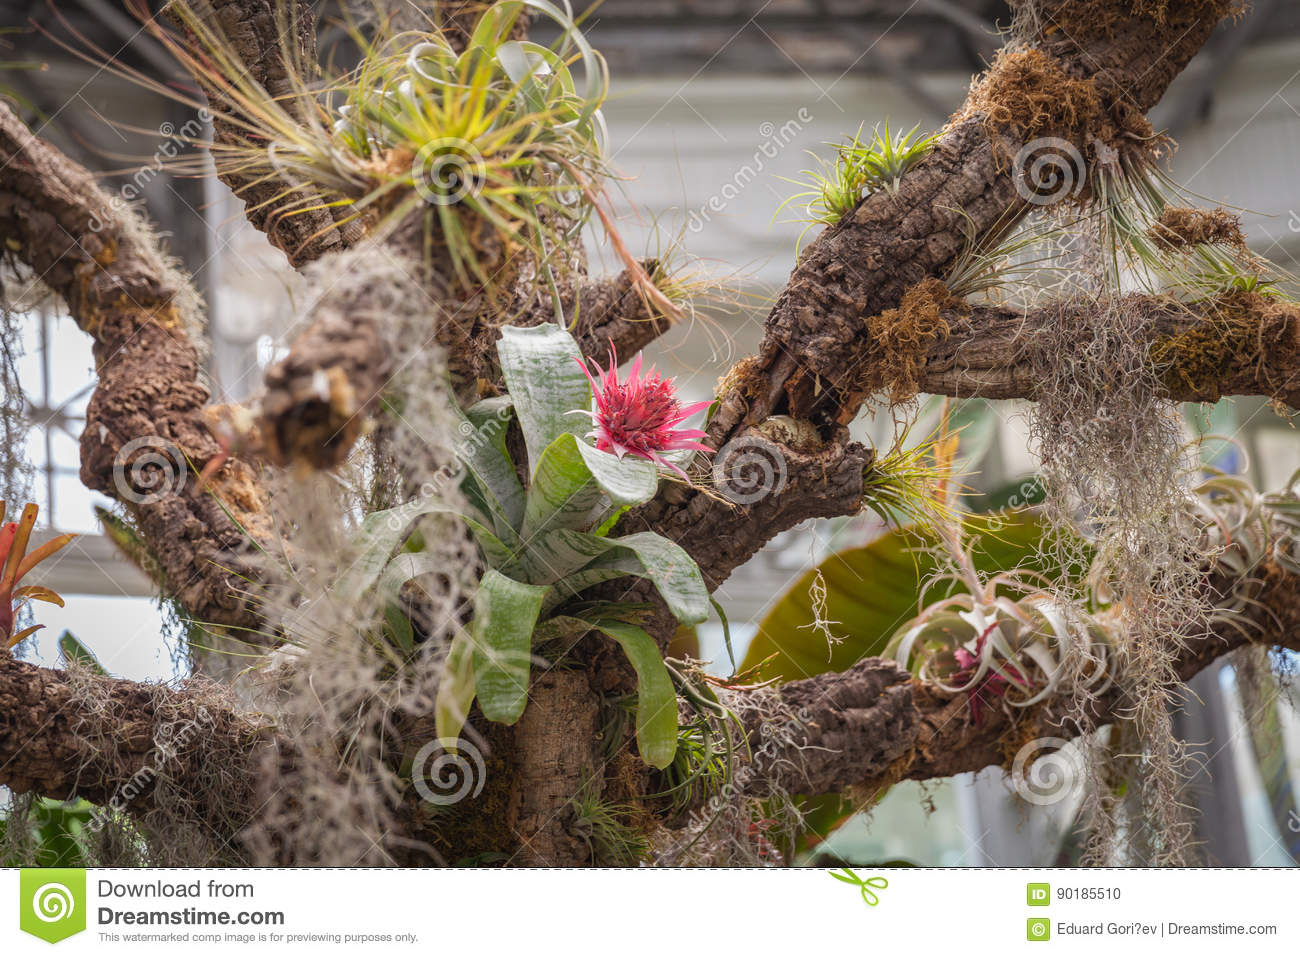 Magic floral garden stock photo. Image of green, painting - 90185510